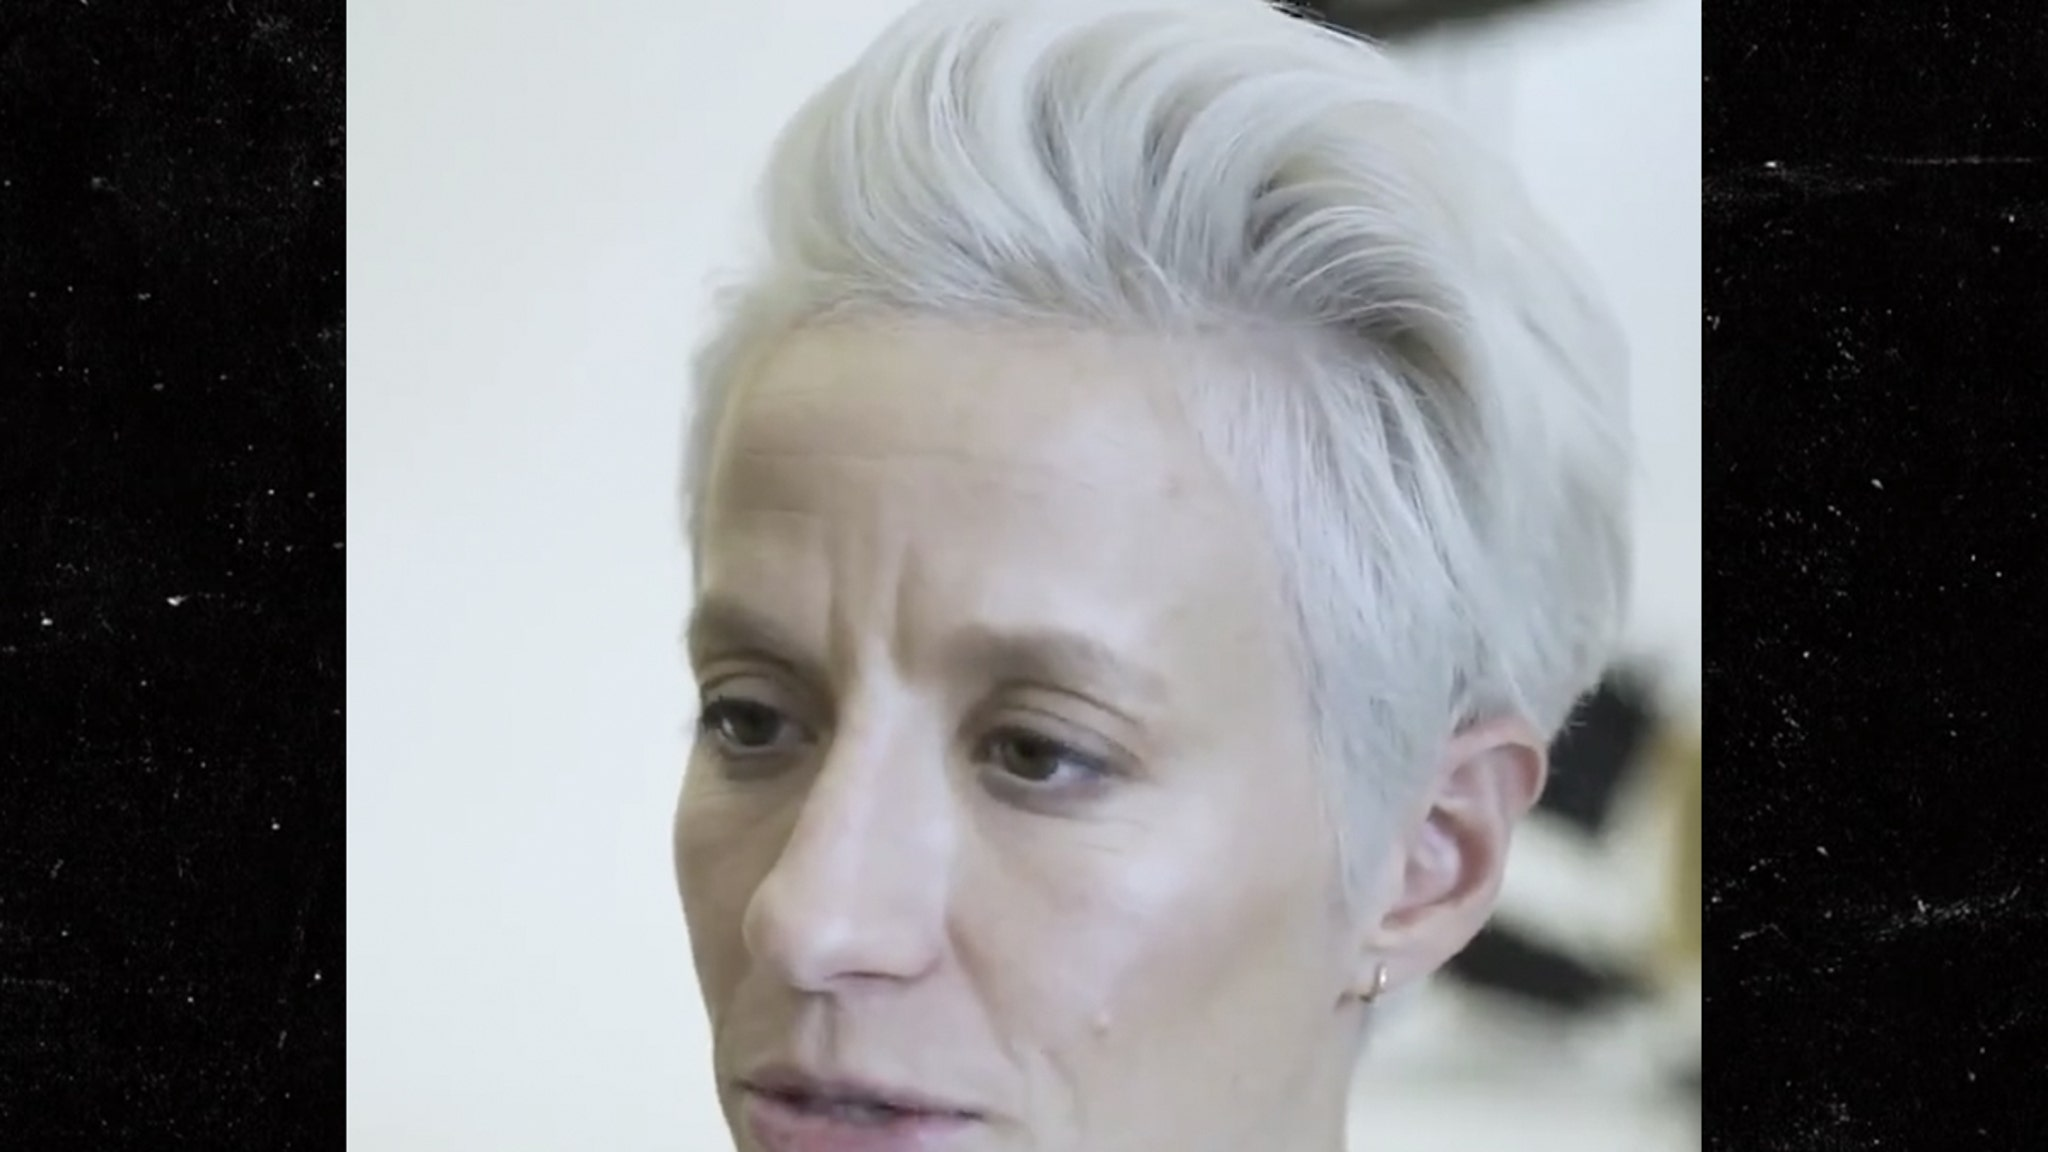 Megan Rapinoe, 'I'm Not Going to the F*cking White House'